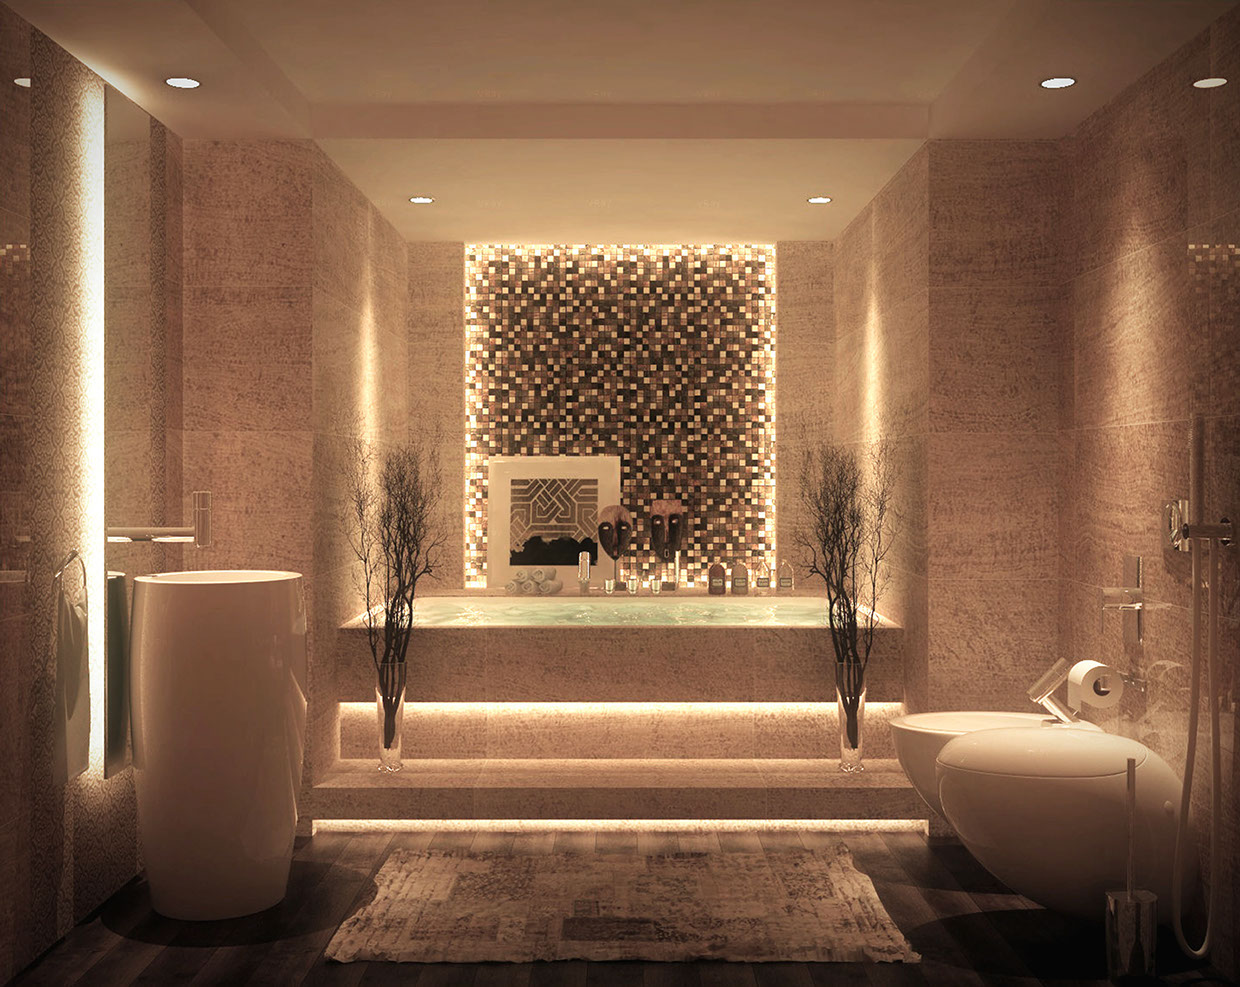 Luxurious Bathroom Design photo - 9